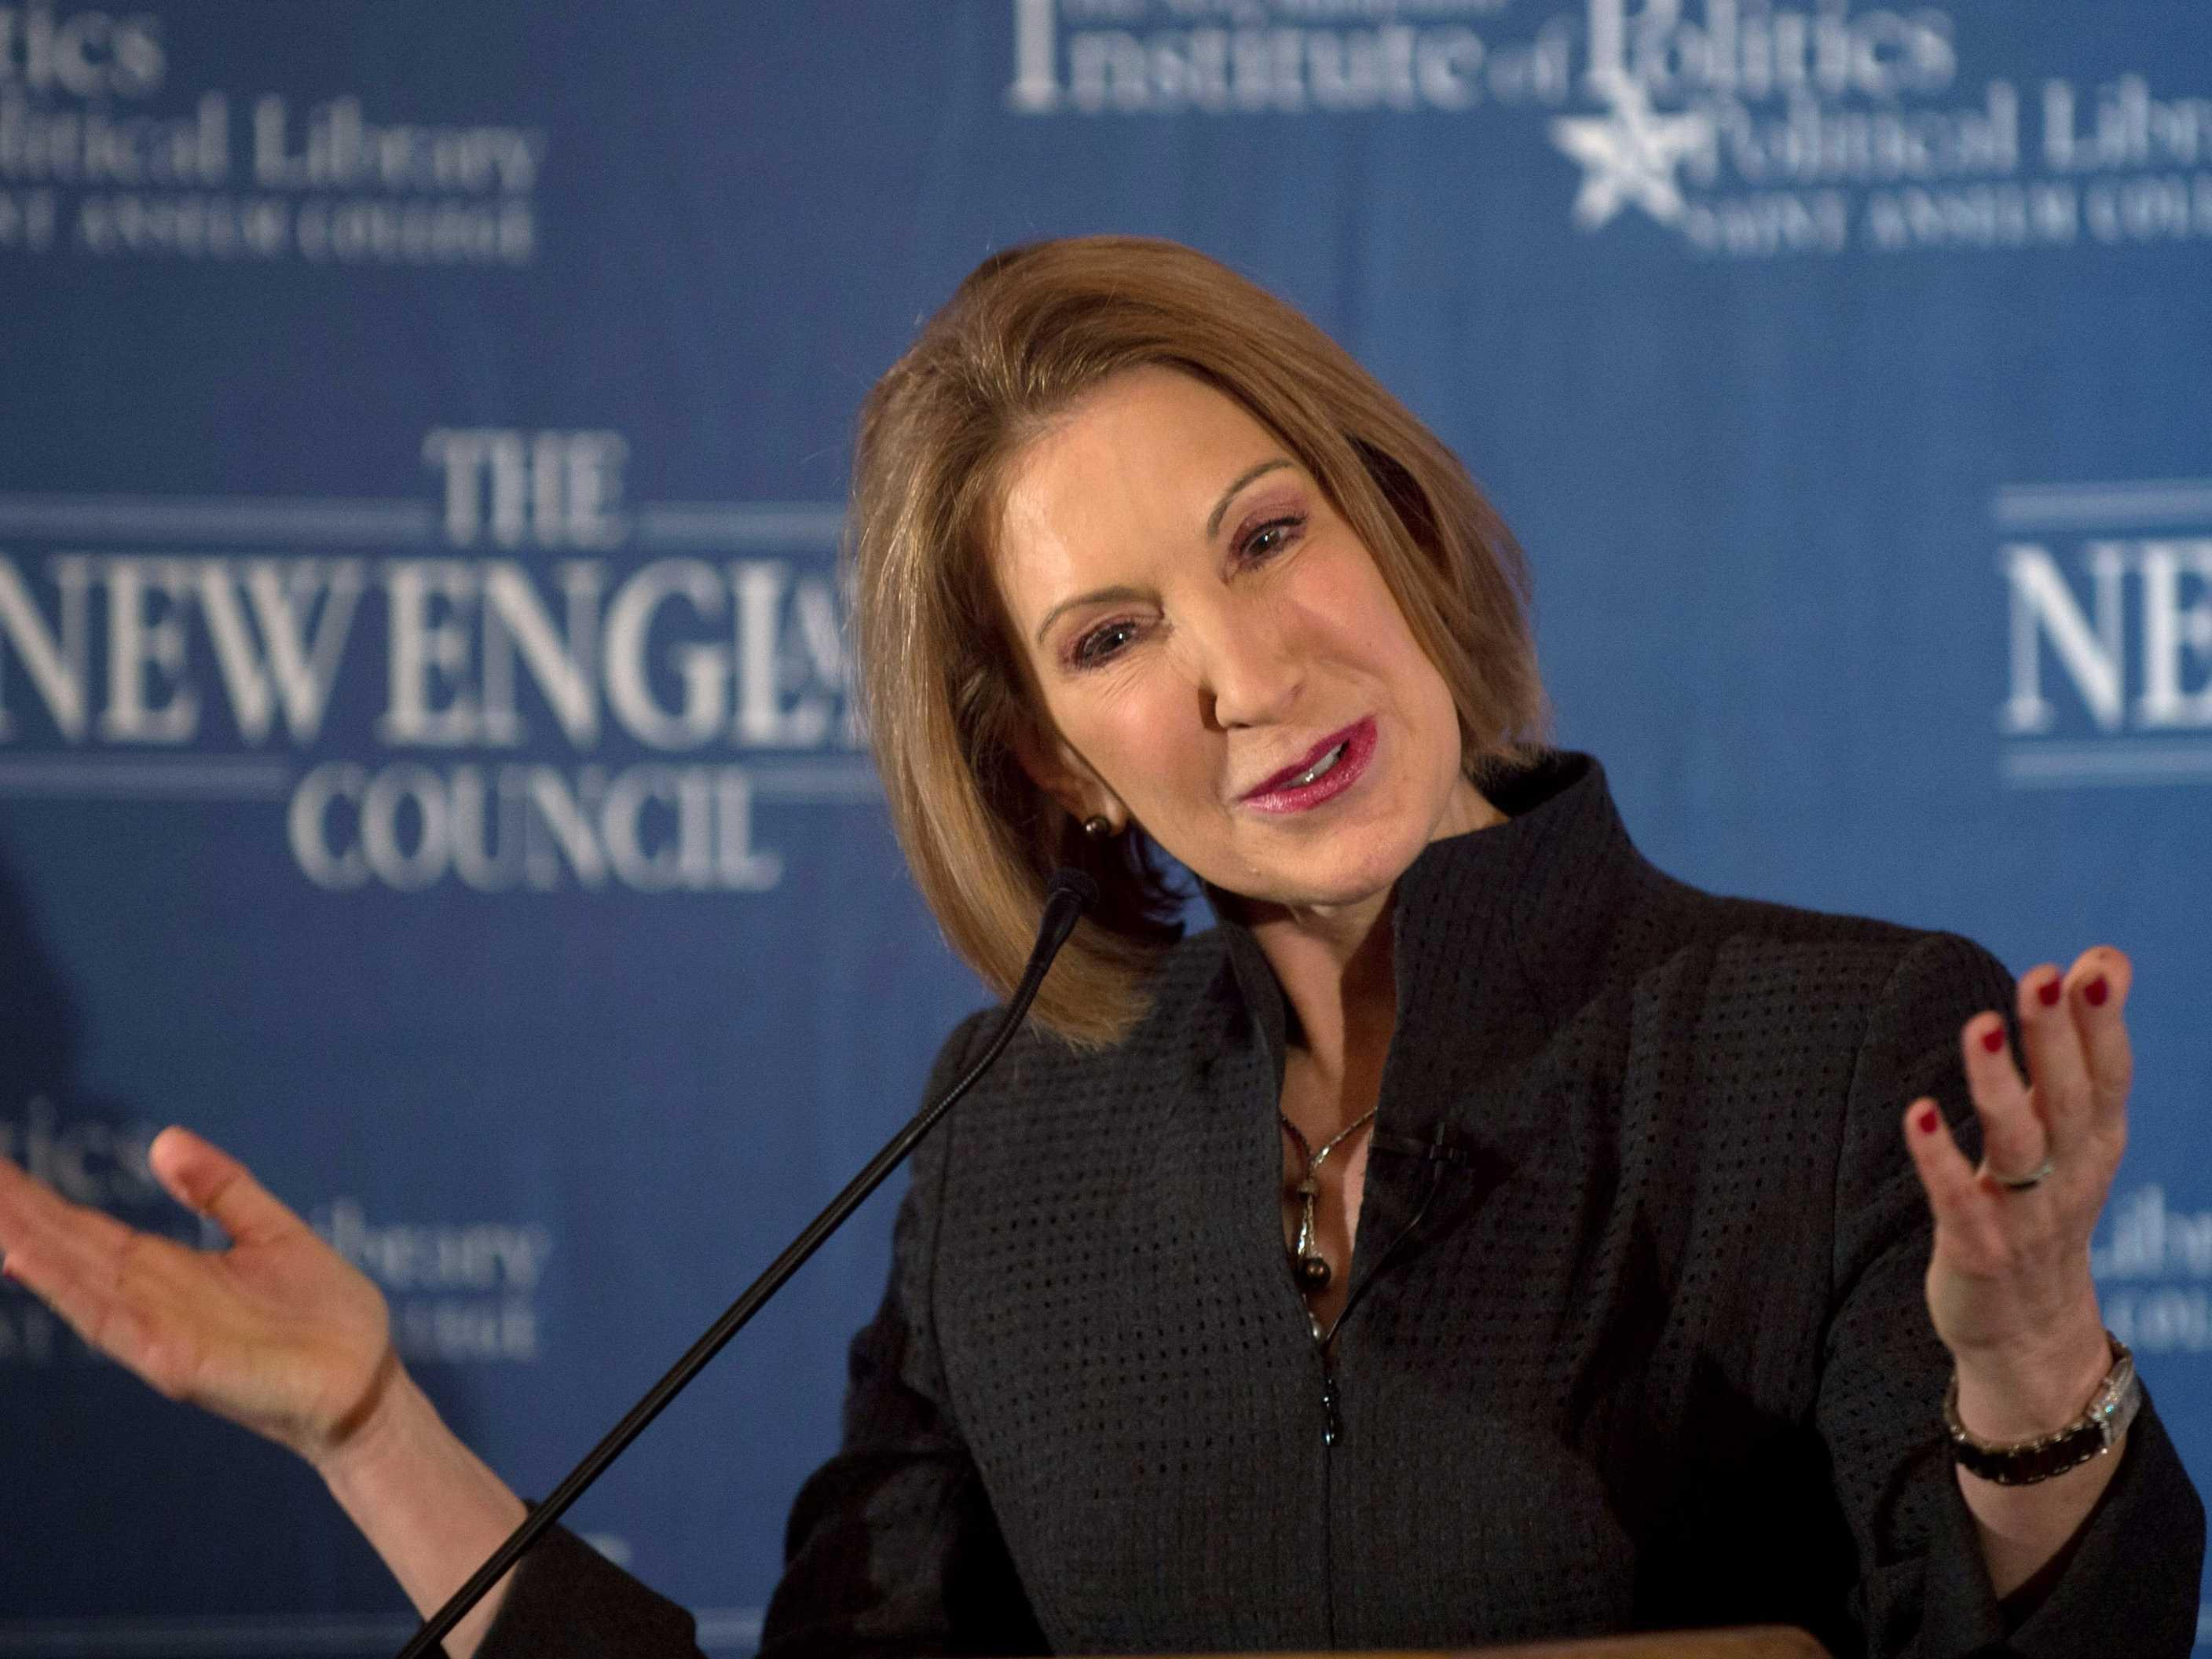 Ex-HP CEO Carly Fiorina is planning to run for president based on her business experience. Here's why that's a terrible idea.